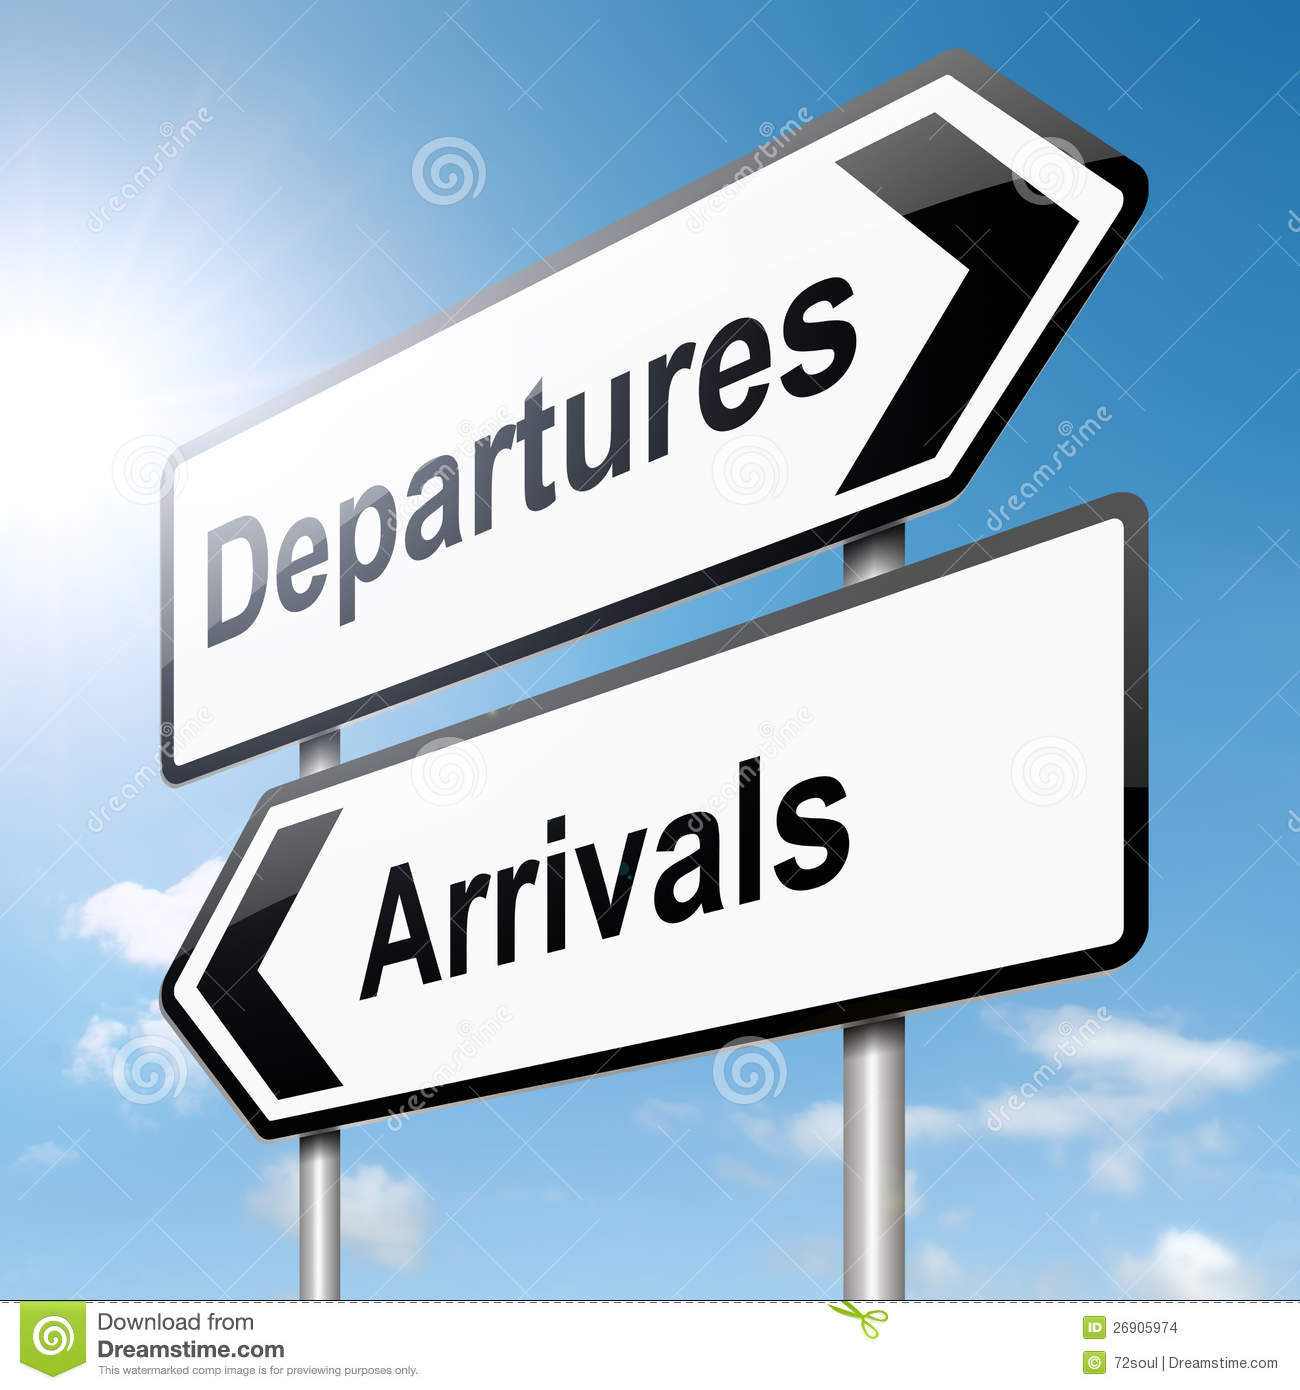 Arrivals and departures stock images image 26905974 - Felpudo arrivals departures ...